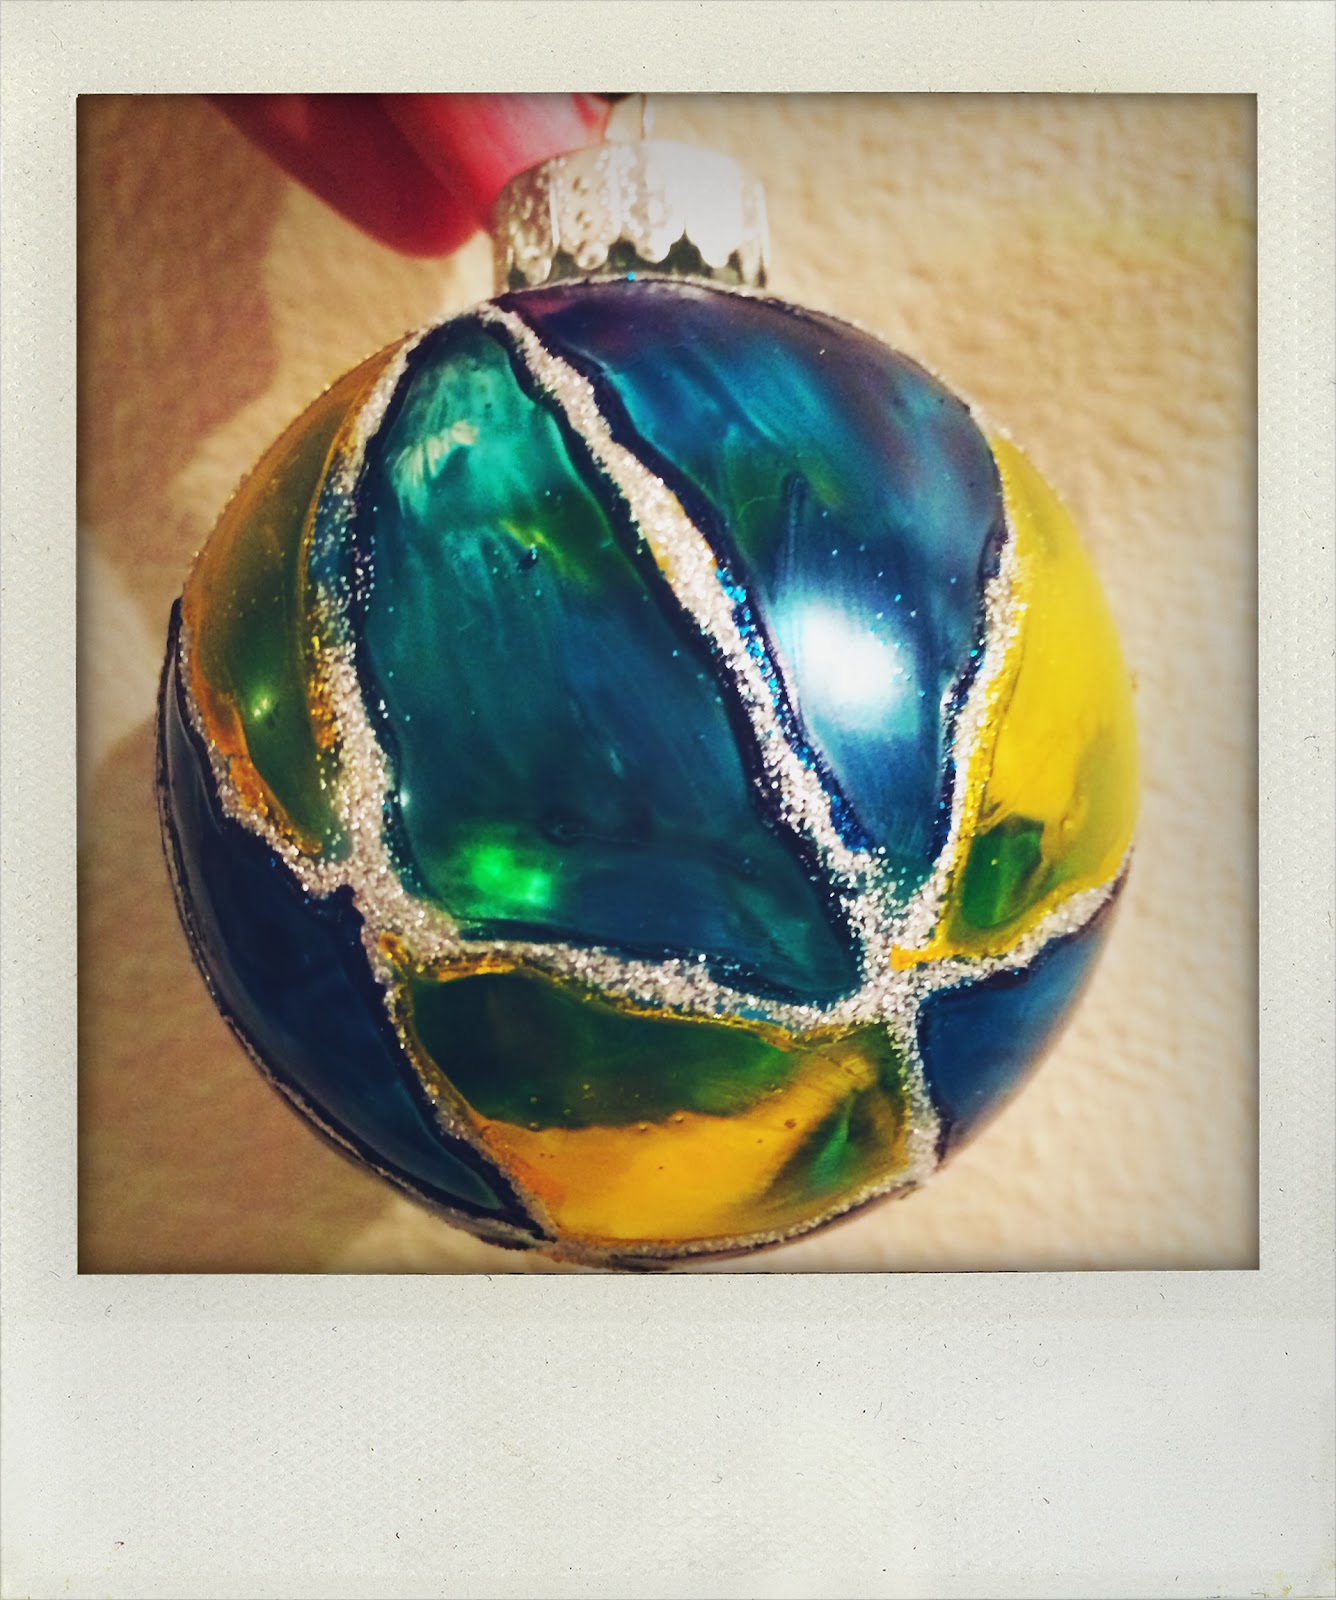 How To Decorate Glass Ornaments For Christmas: Simple Silver Linings: Ornament Decorating Party